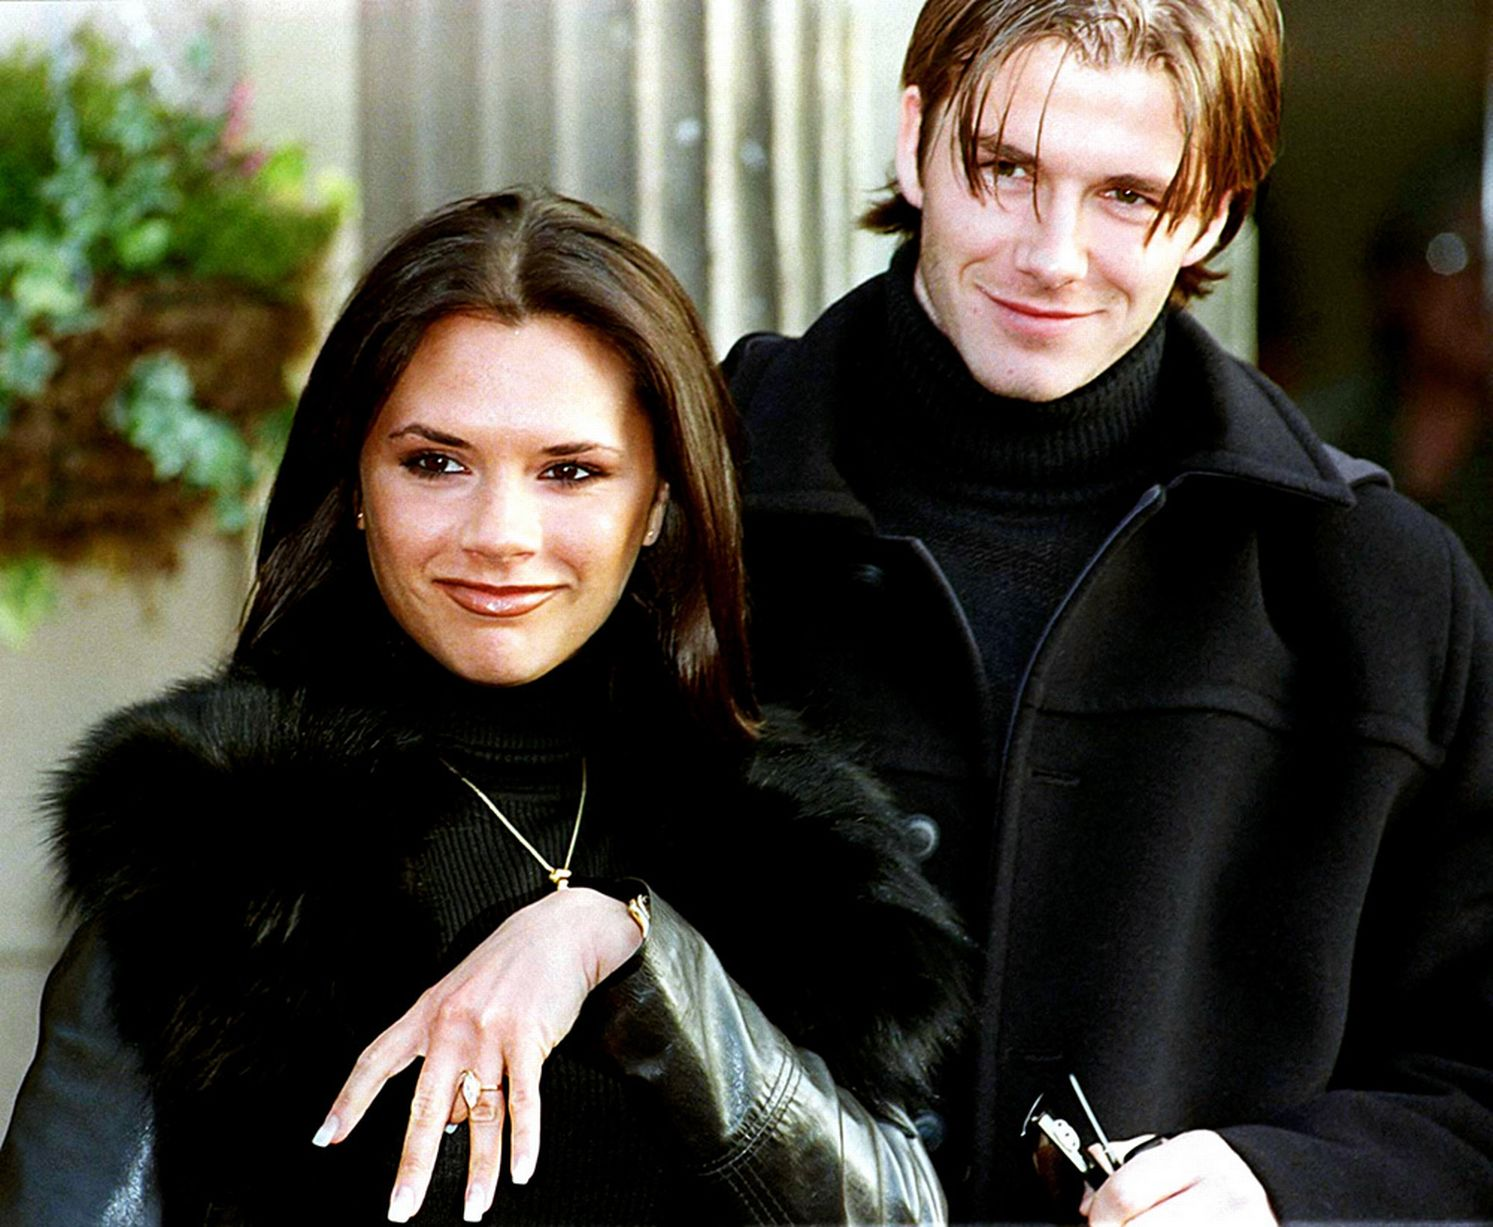 Image result for image of posh and becks young